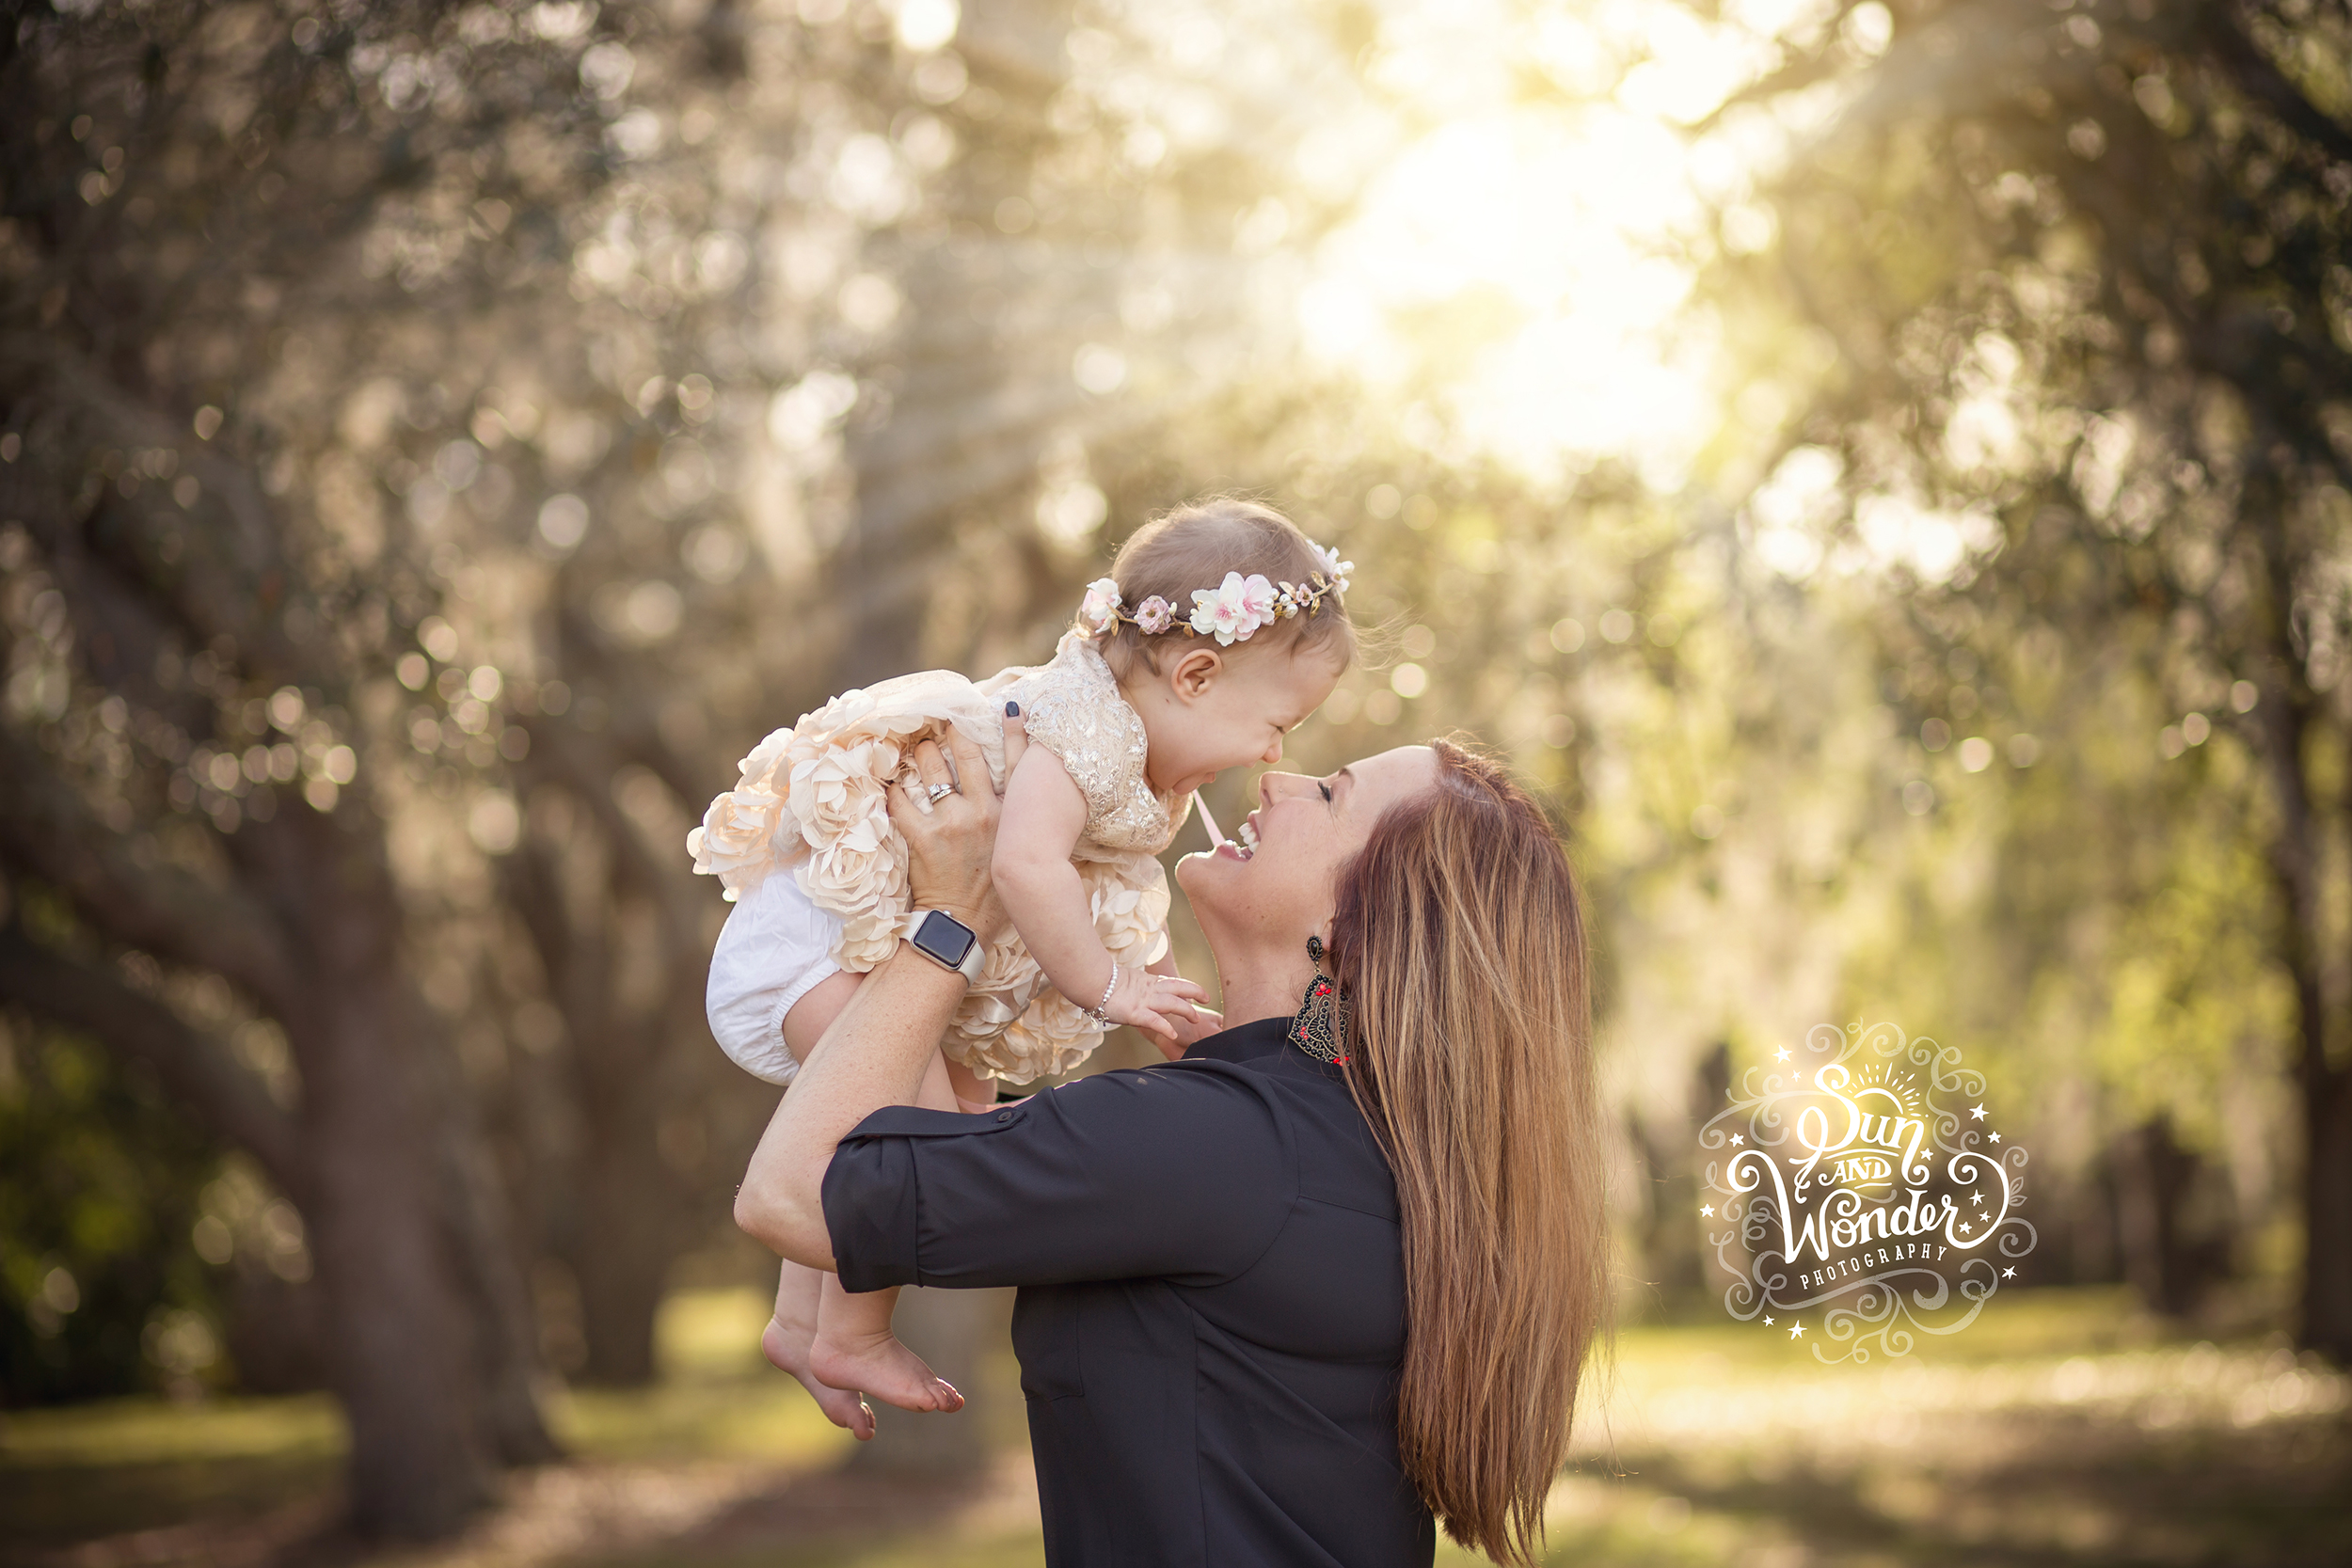 Sun and Wonder Photography - Family Portrait Sessions